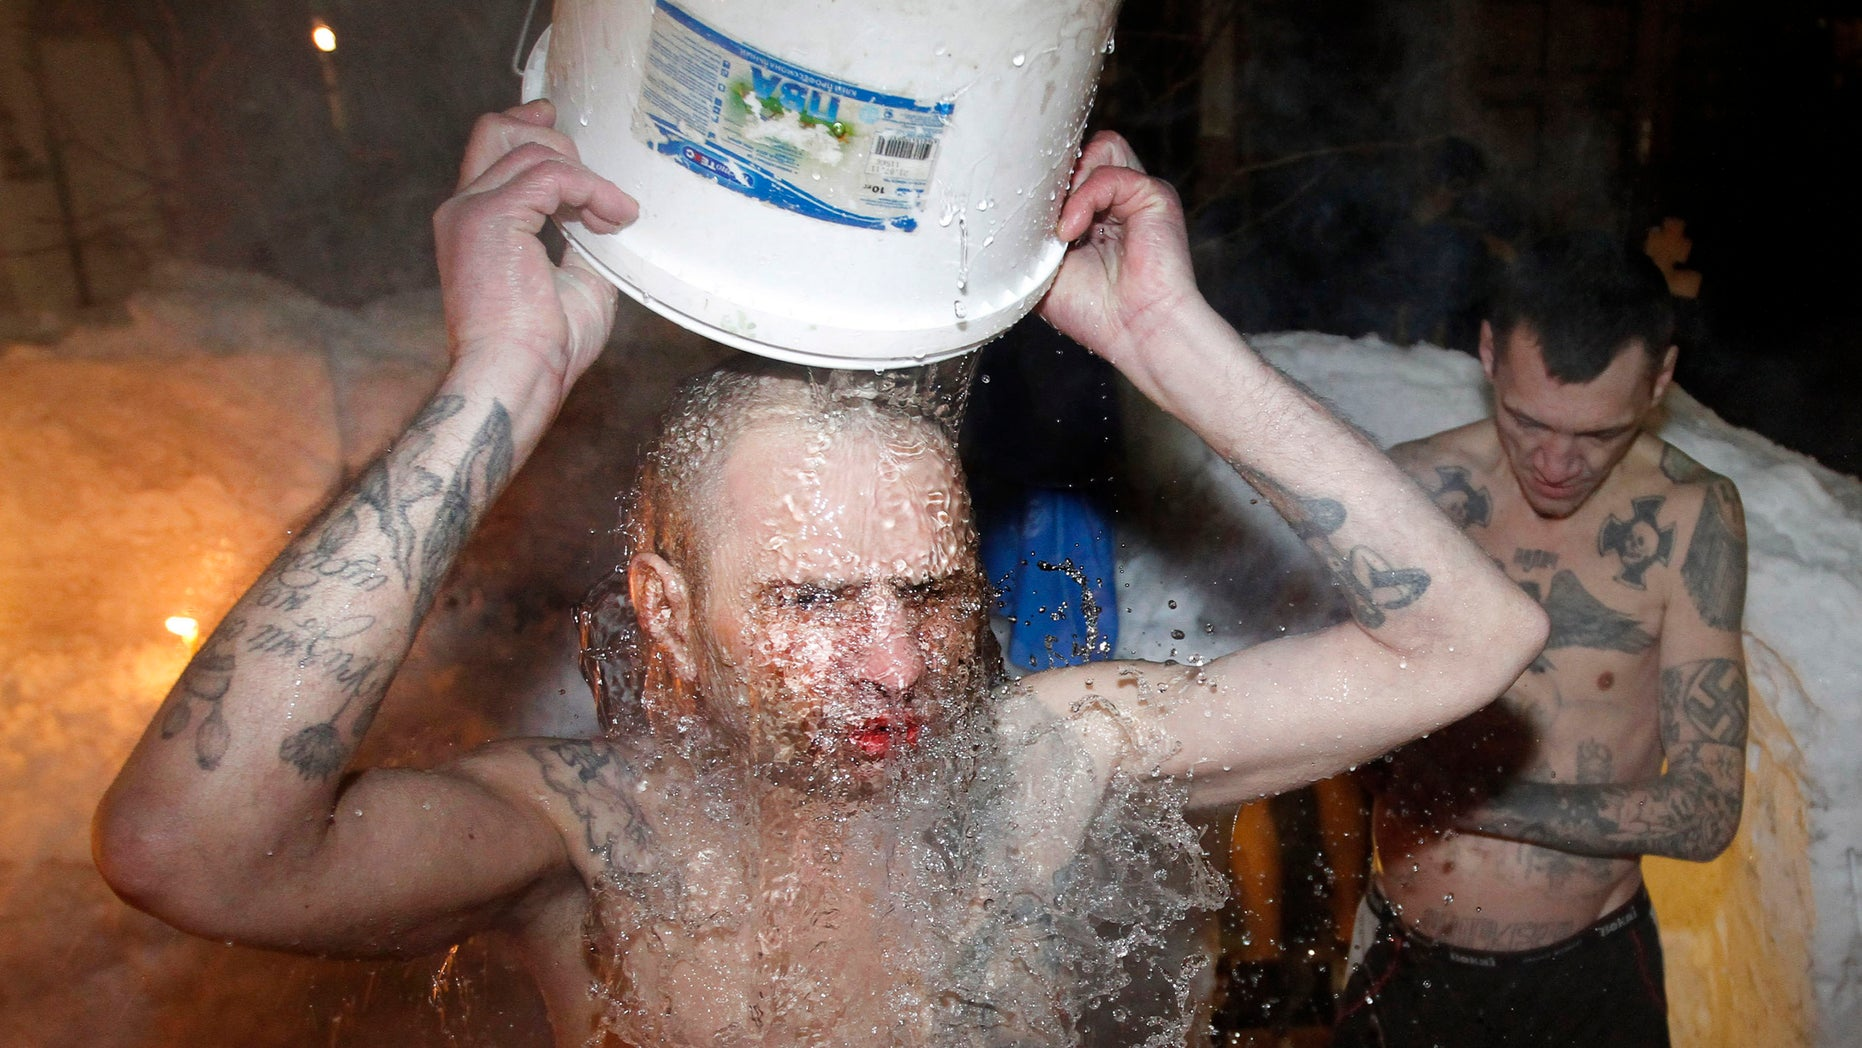 """FILE - In this file photo dated Thursday, Jan. 19, 2012, inmates of a prison colony pour cold water over themselves to celebrate Epiphany at St. Peter and Paul Cathedral in the Murmansk region of northern Russia.  The contract-style killing of Russian mobster Aslan Usoyan, also known as Grandpa Khasan, on Wednesday Jan16, 2013, drew renewed attention to the extensive and elaborate culture of the country's underworld figures who call themselves """"crowned thieves"""" and """"thieves in law.""""  Only top criminals are allowed to have tattoos which signal their privileged status within the criminal underworld, and may contain obscure codes, such as MIR (peace) meaning """"Only capital punishment will correct me, and the Nazi swastika means rejection of everything Soviet (but does not make its bearer a neo-Nazi). (AP Photo/ Andrey Pronin, FILE)"""